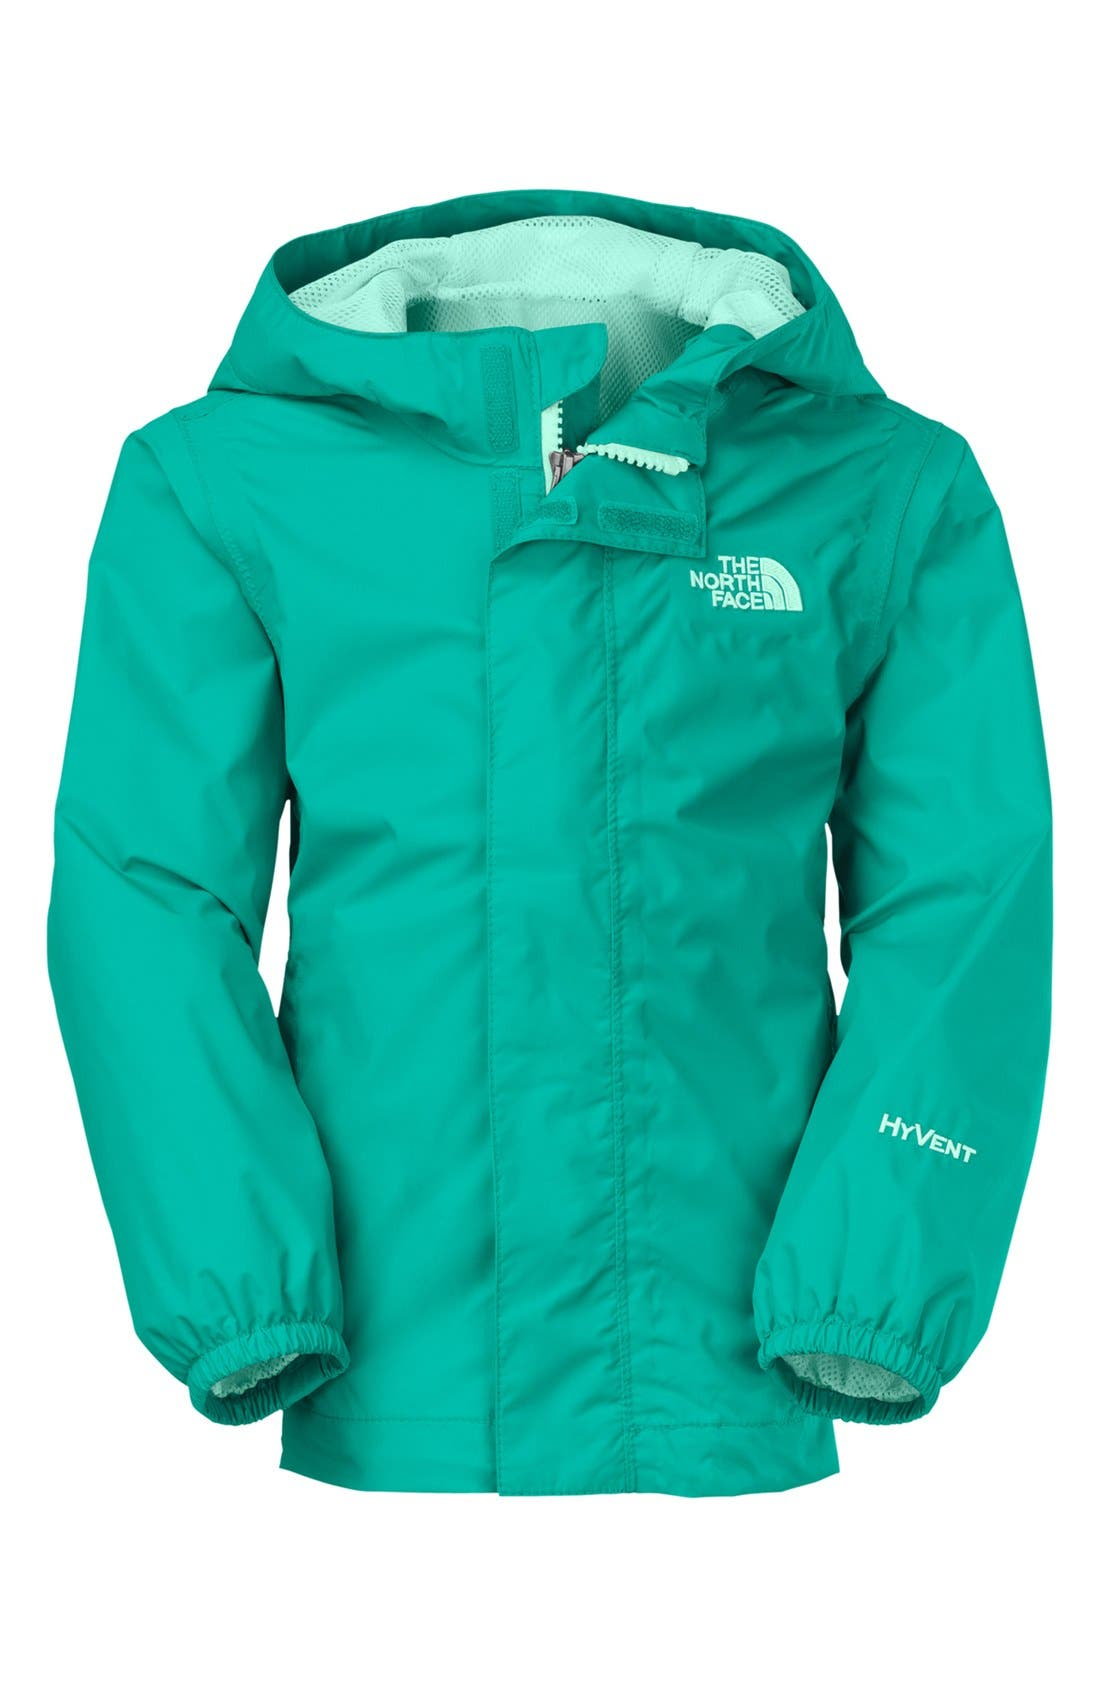 Alternate Image 1 Selected - The North Face 'Tailout' Rain Jacket (Toddler Girls)